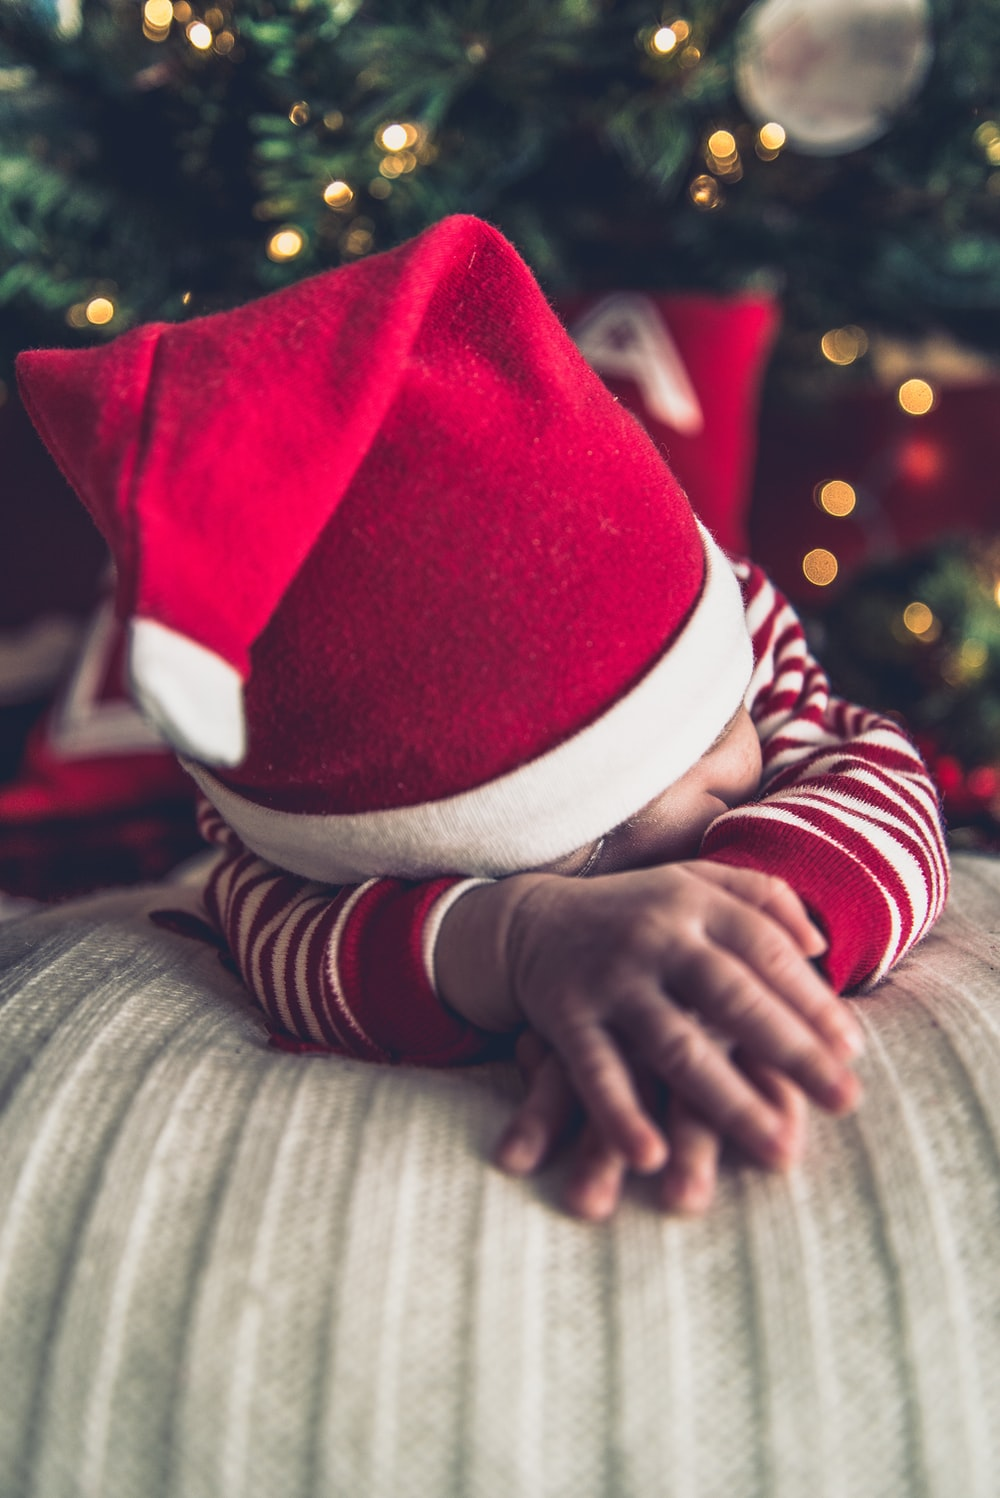 A baby wearing a Christmas outfit and Santa hat.